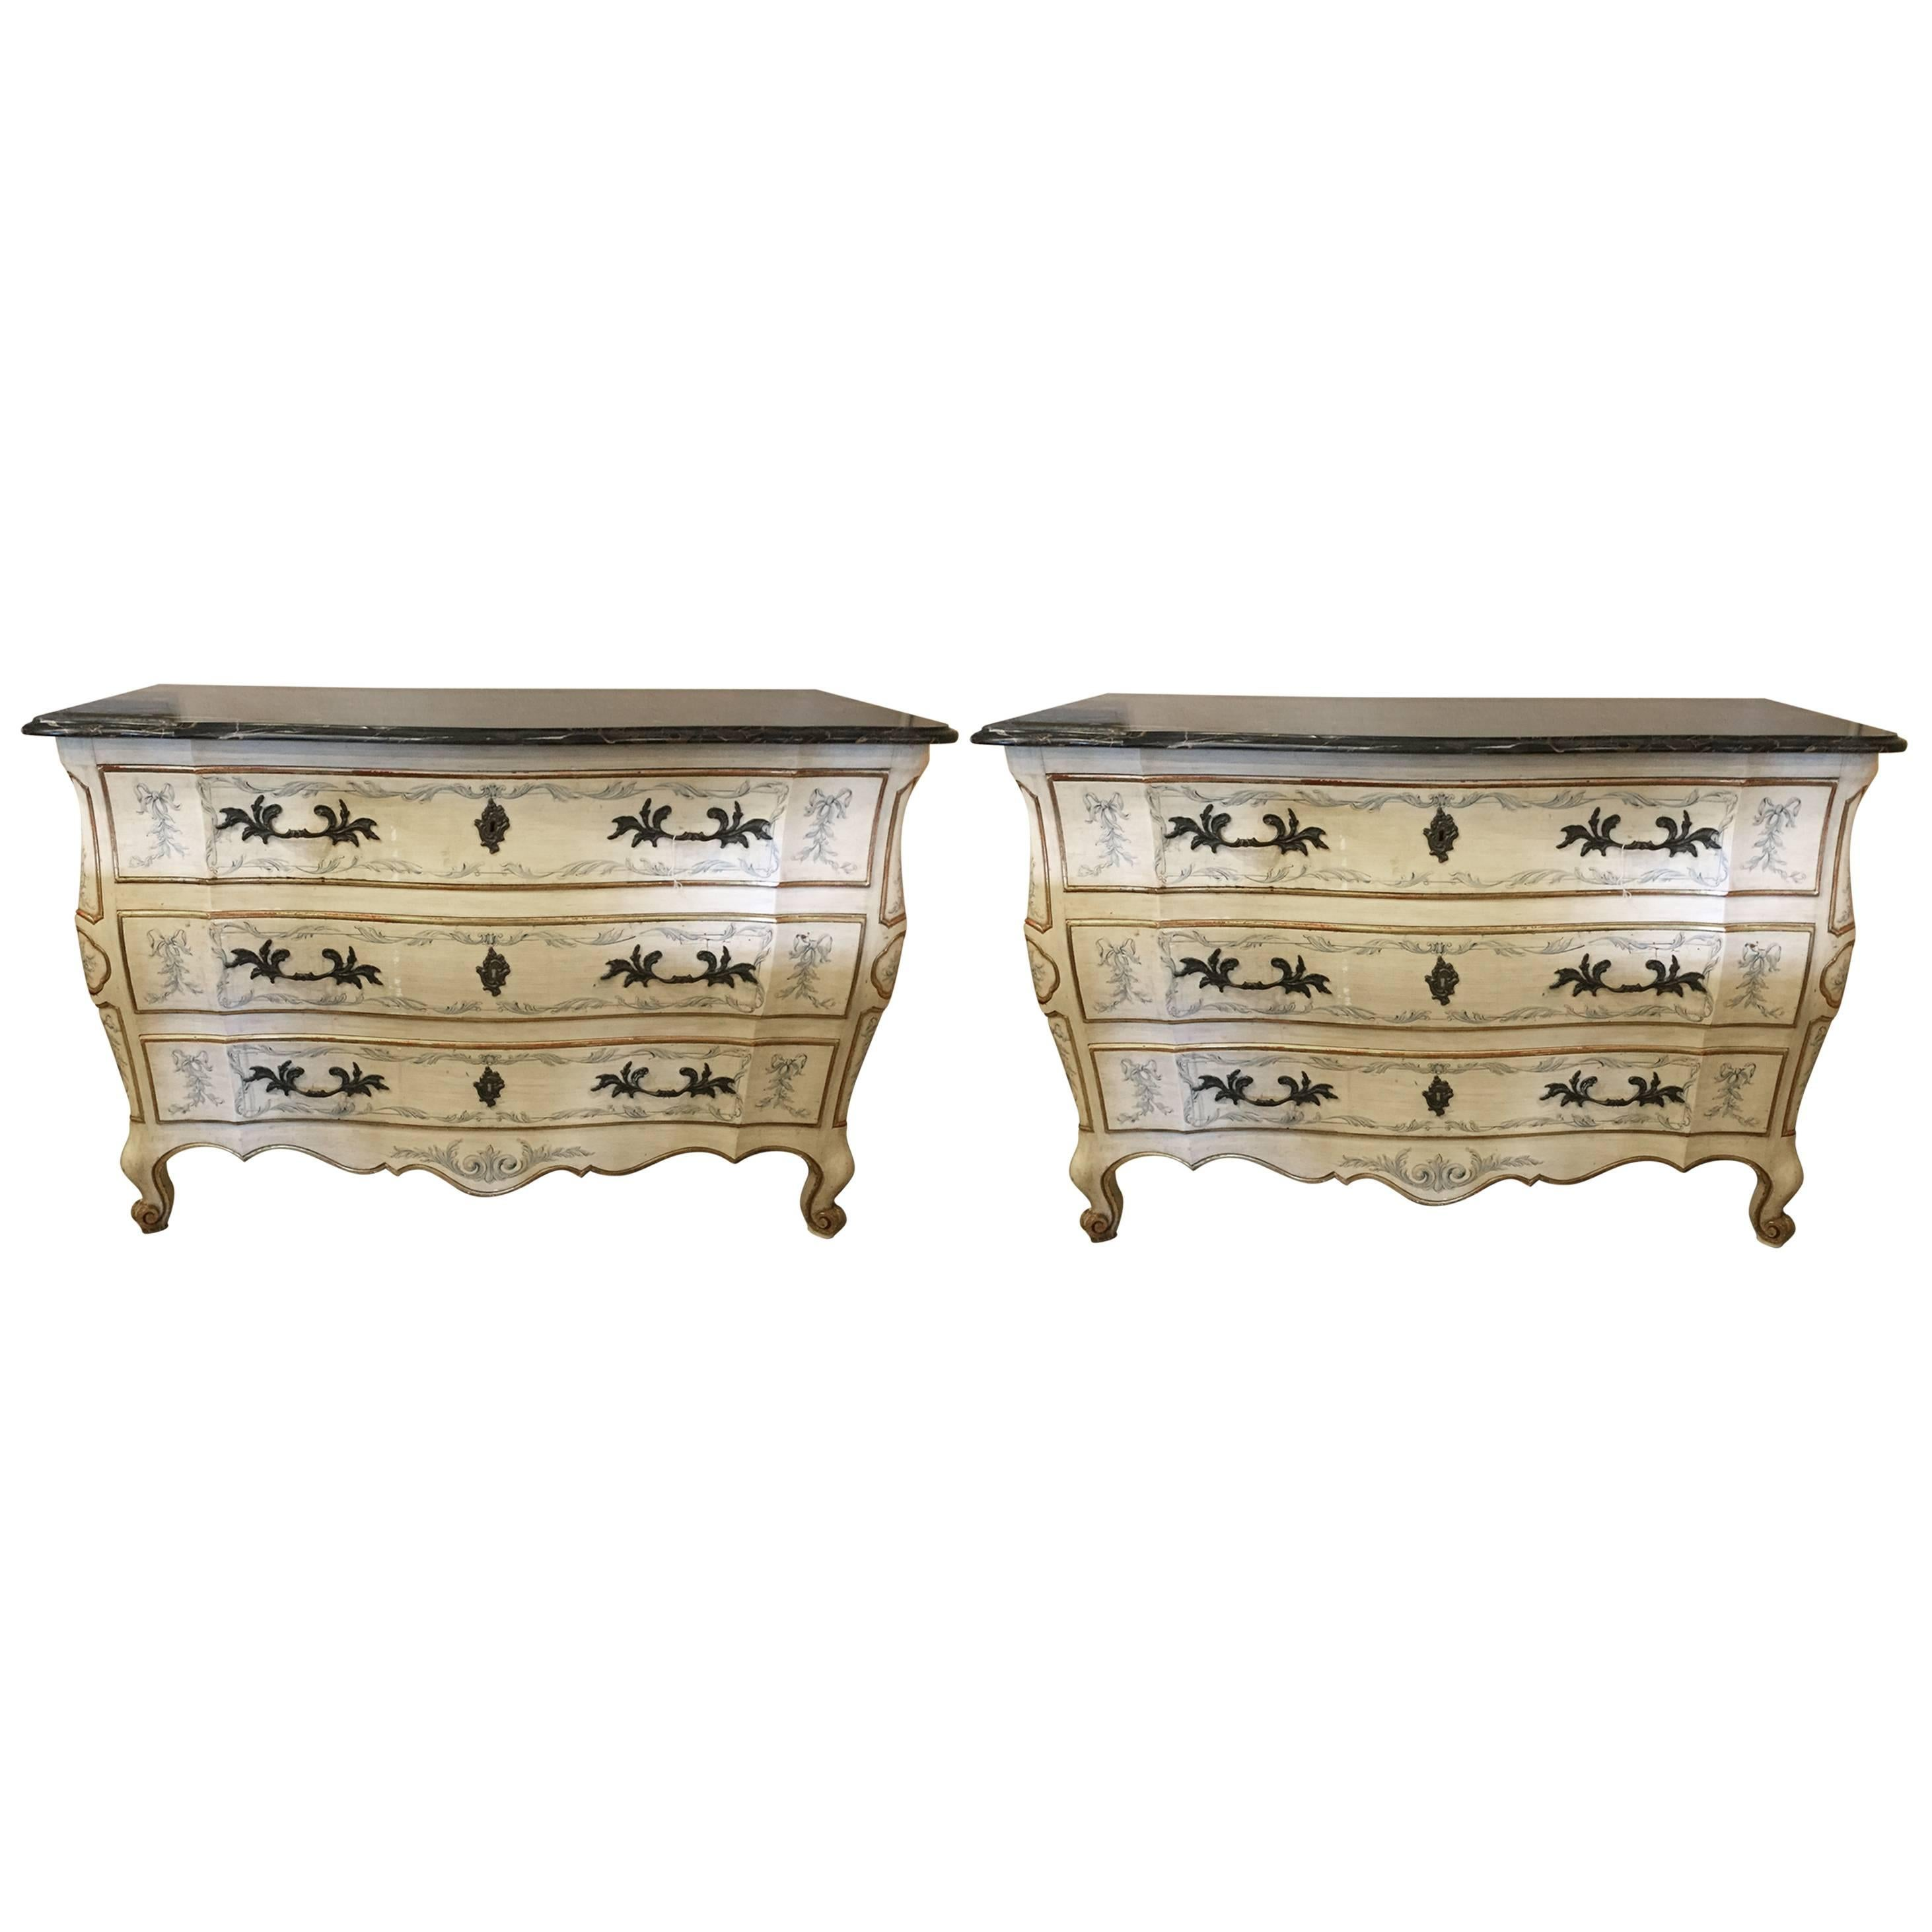 Pair of Painted Bombe Marble-Top Chests or Commodes by John Widdicomb